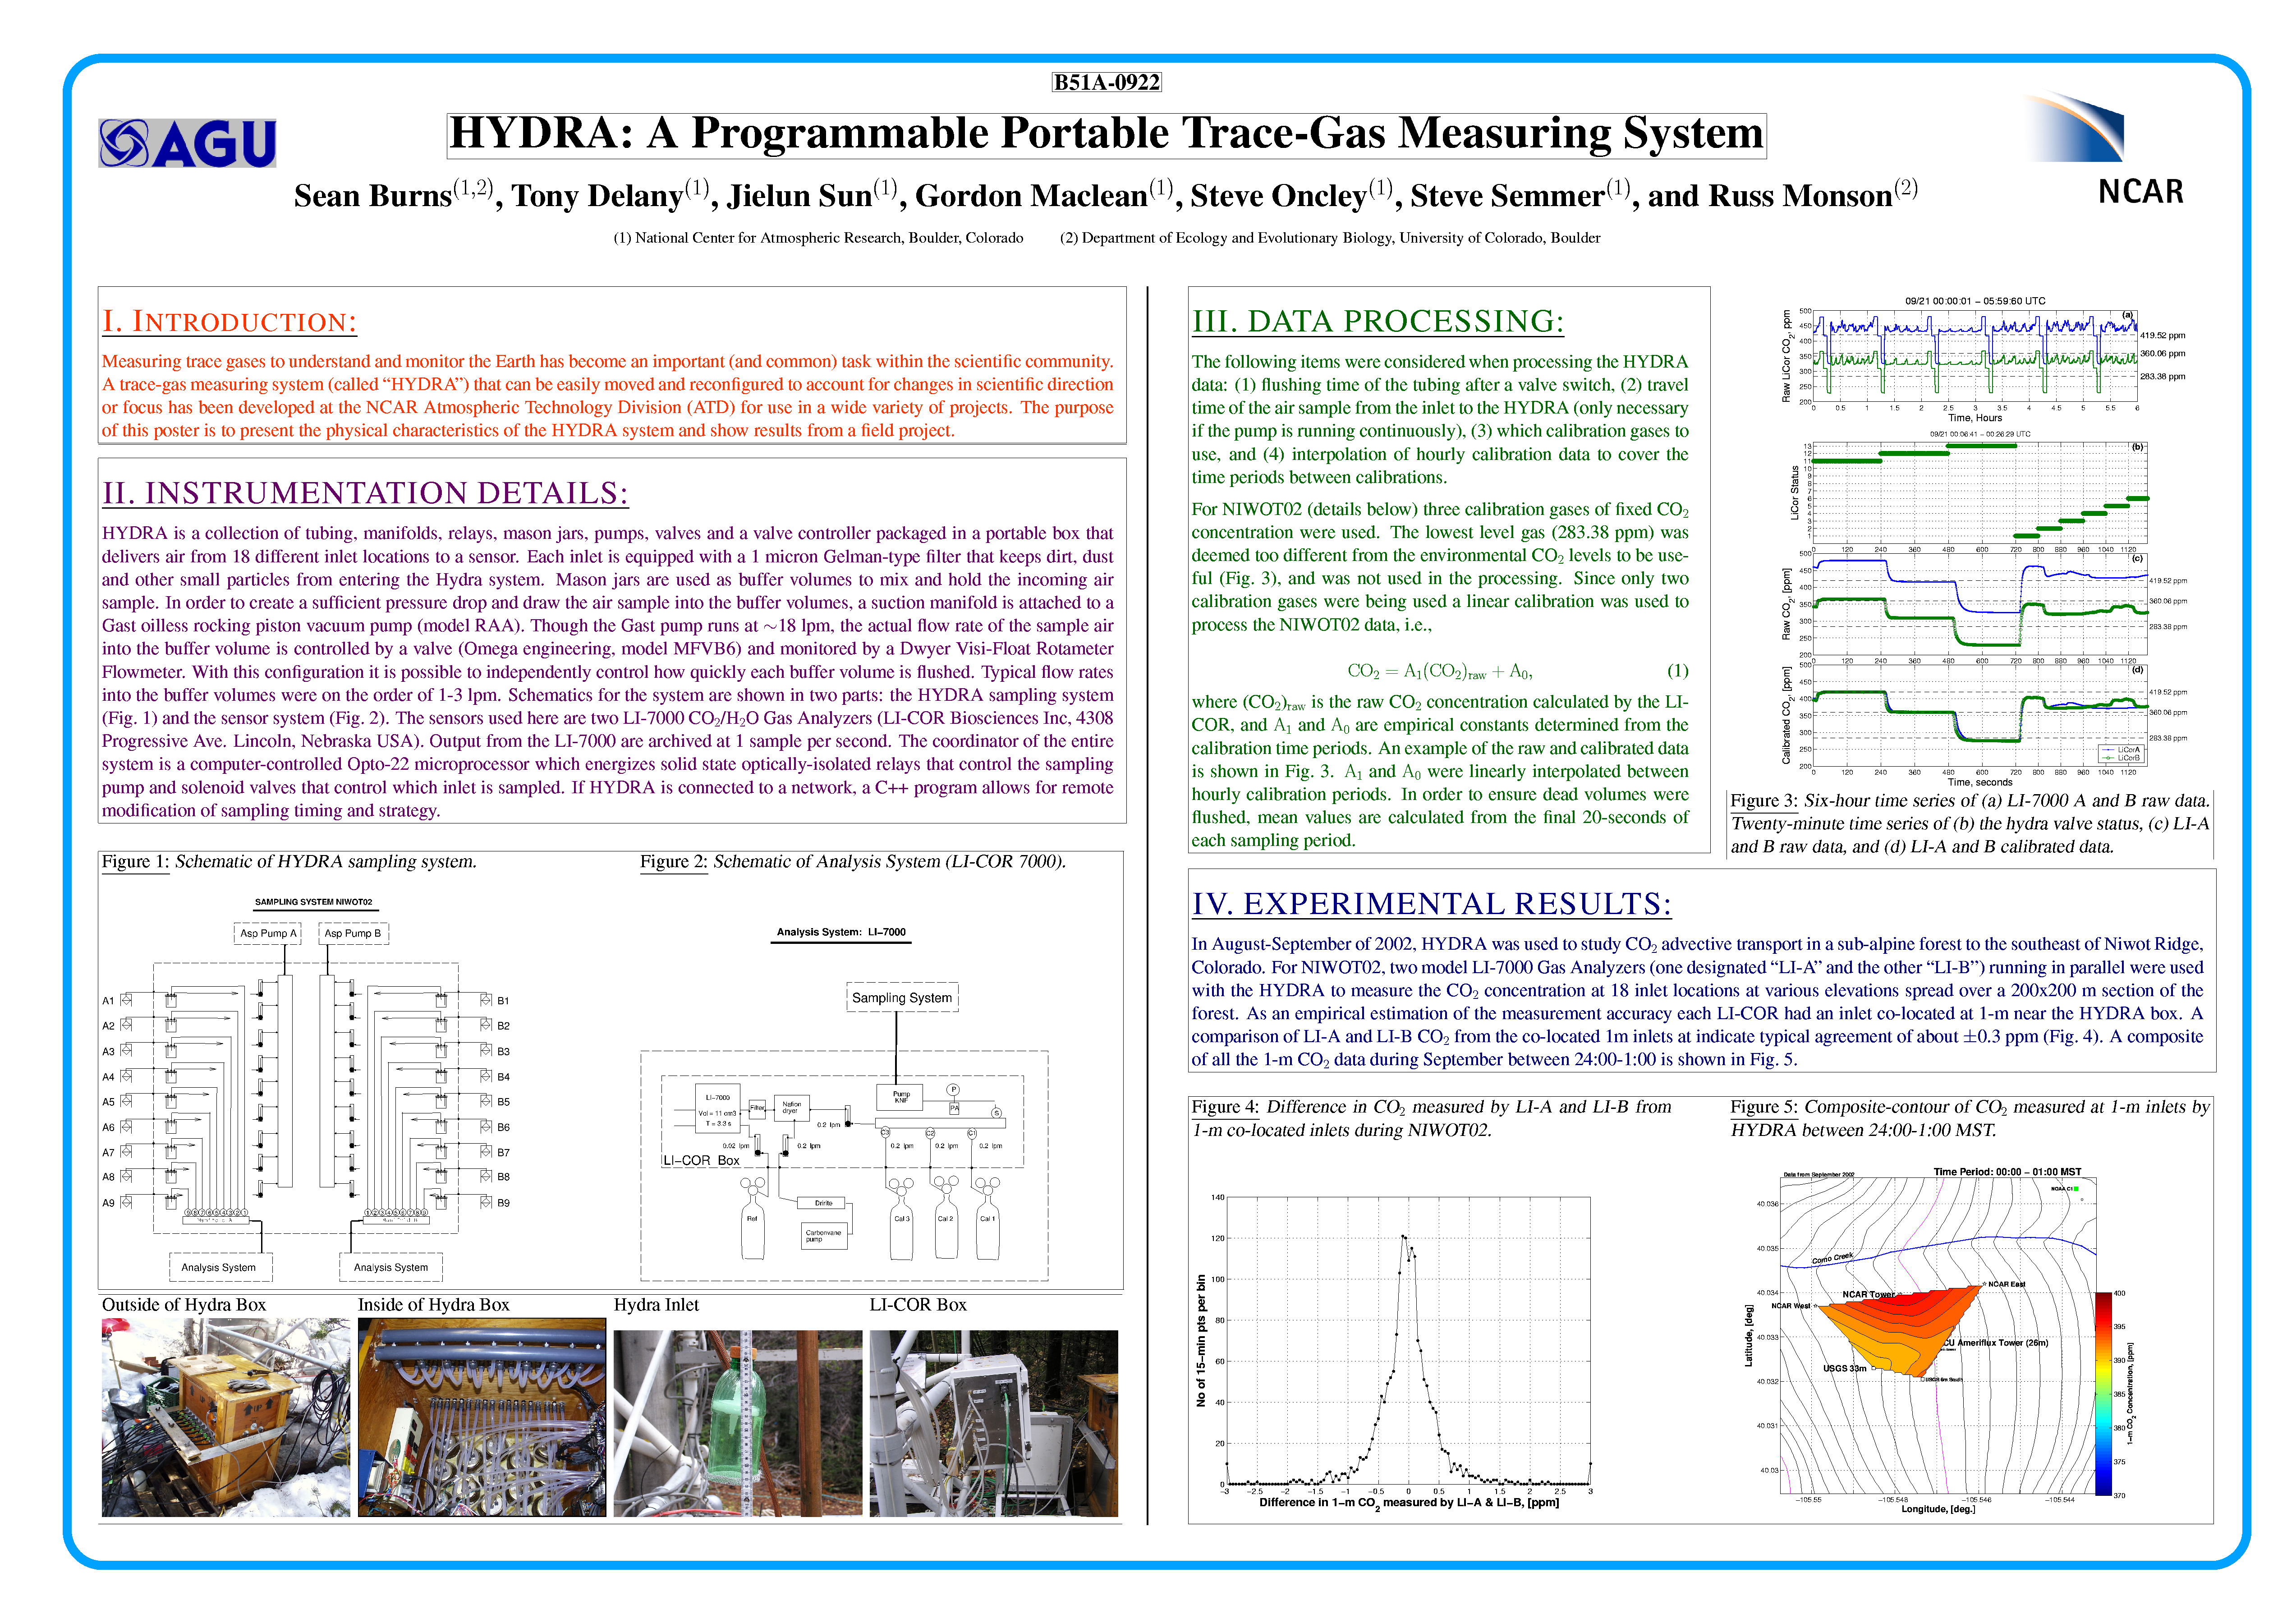 Poster for 2004 AGU Fall Meeting